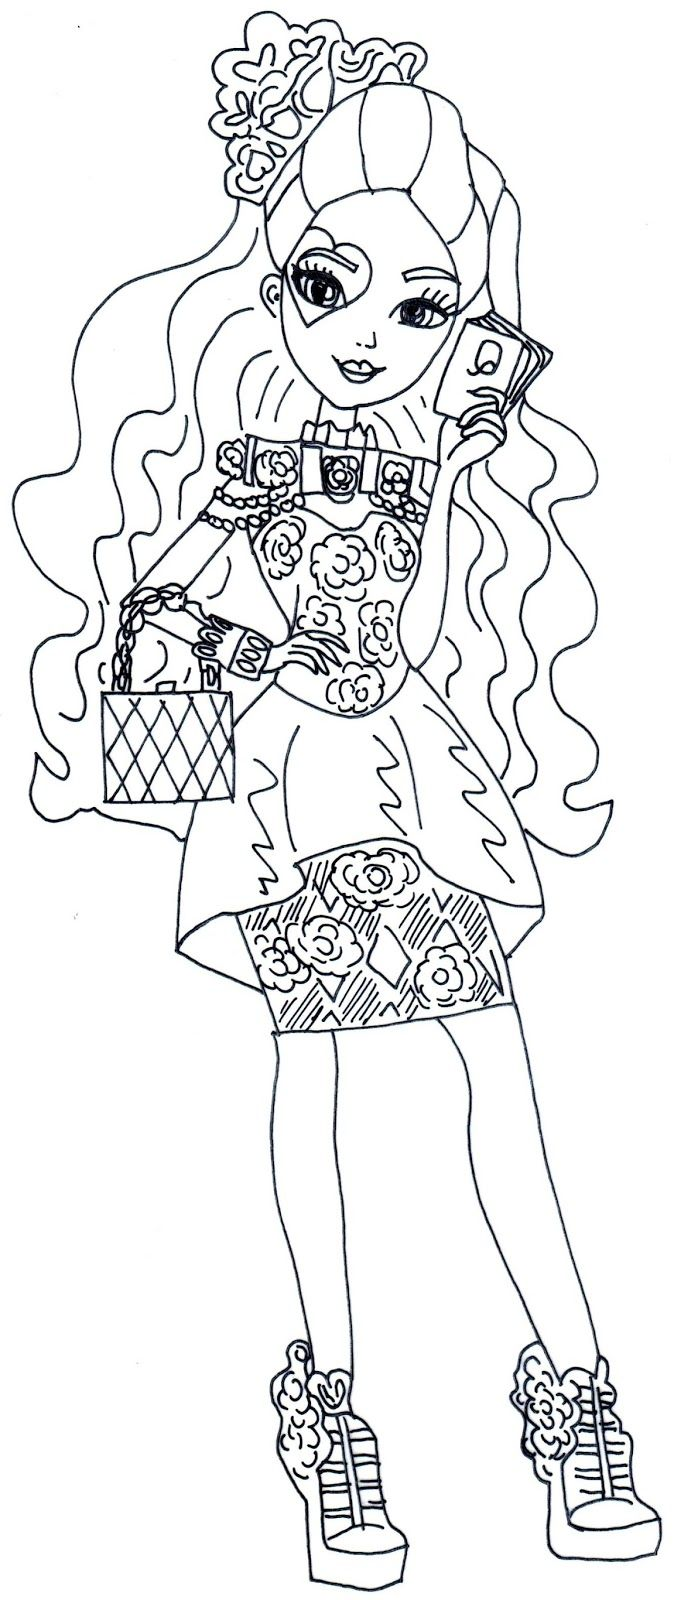 Spring Unsprung Lizzie Hearts Ever After High Coloring Page Jpg